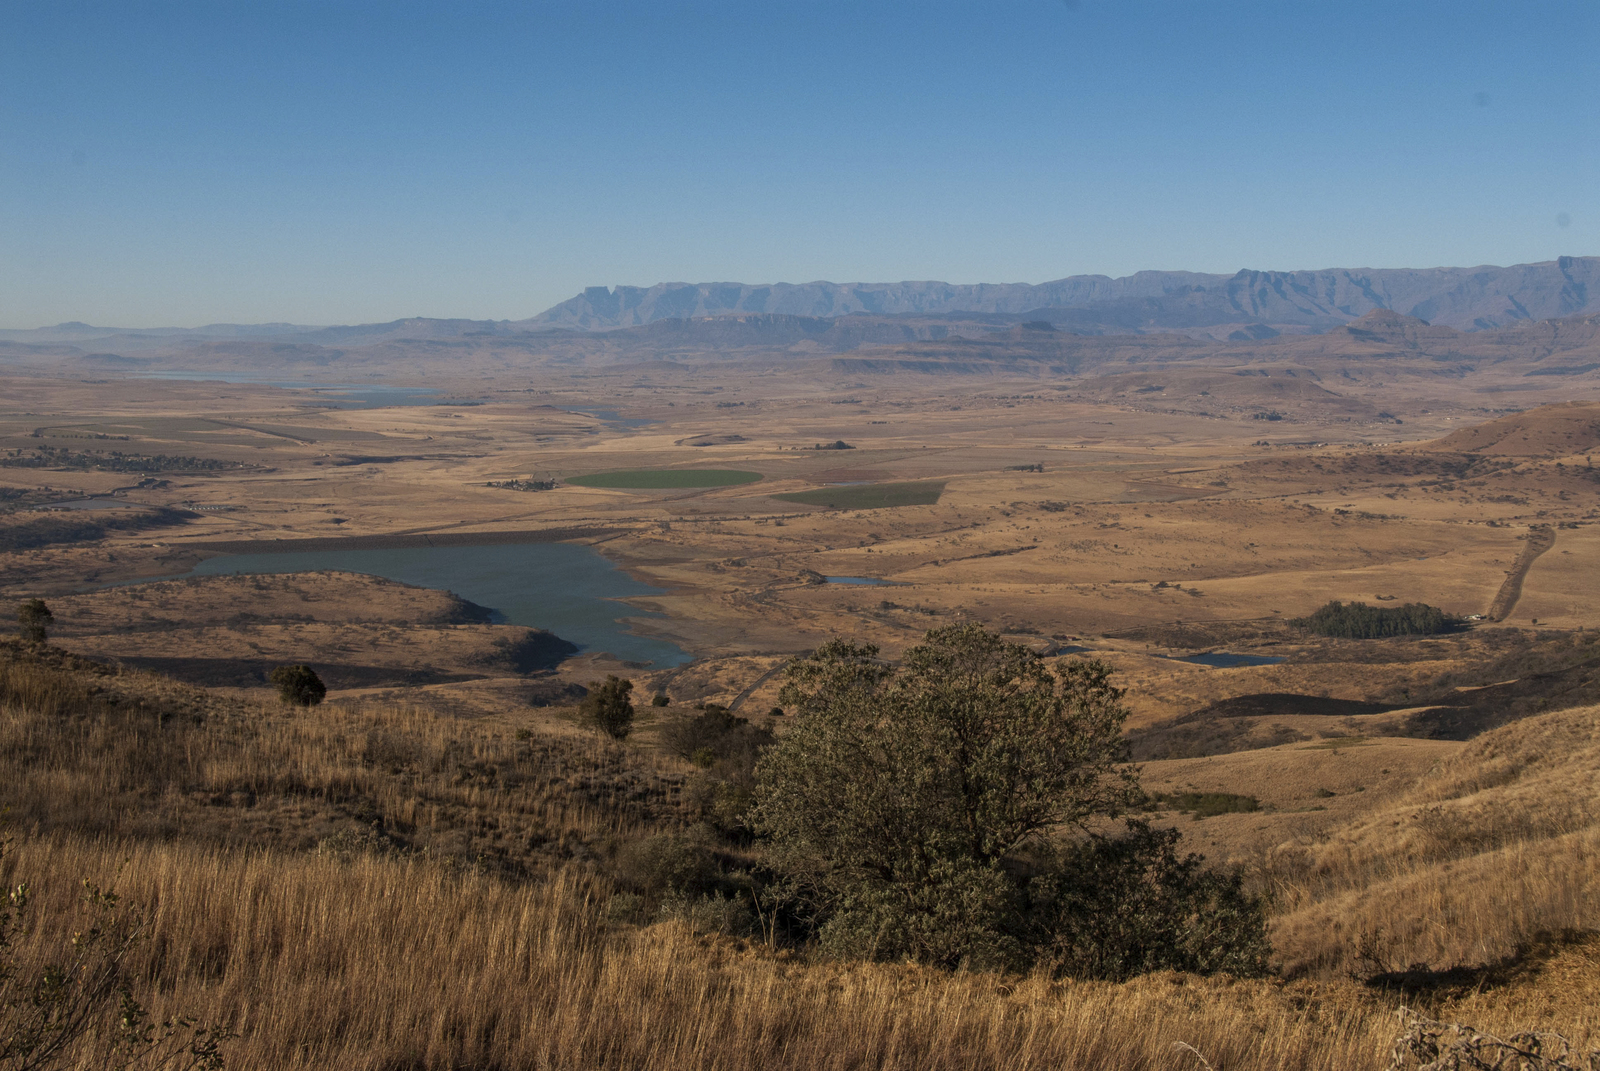 Grasslands in southern Africa. ©Rod Mast